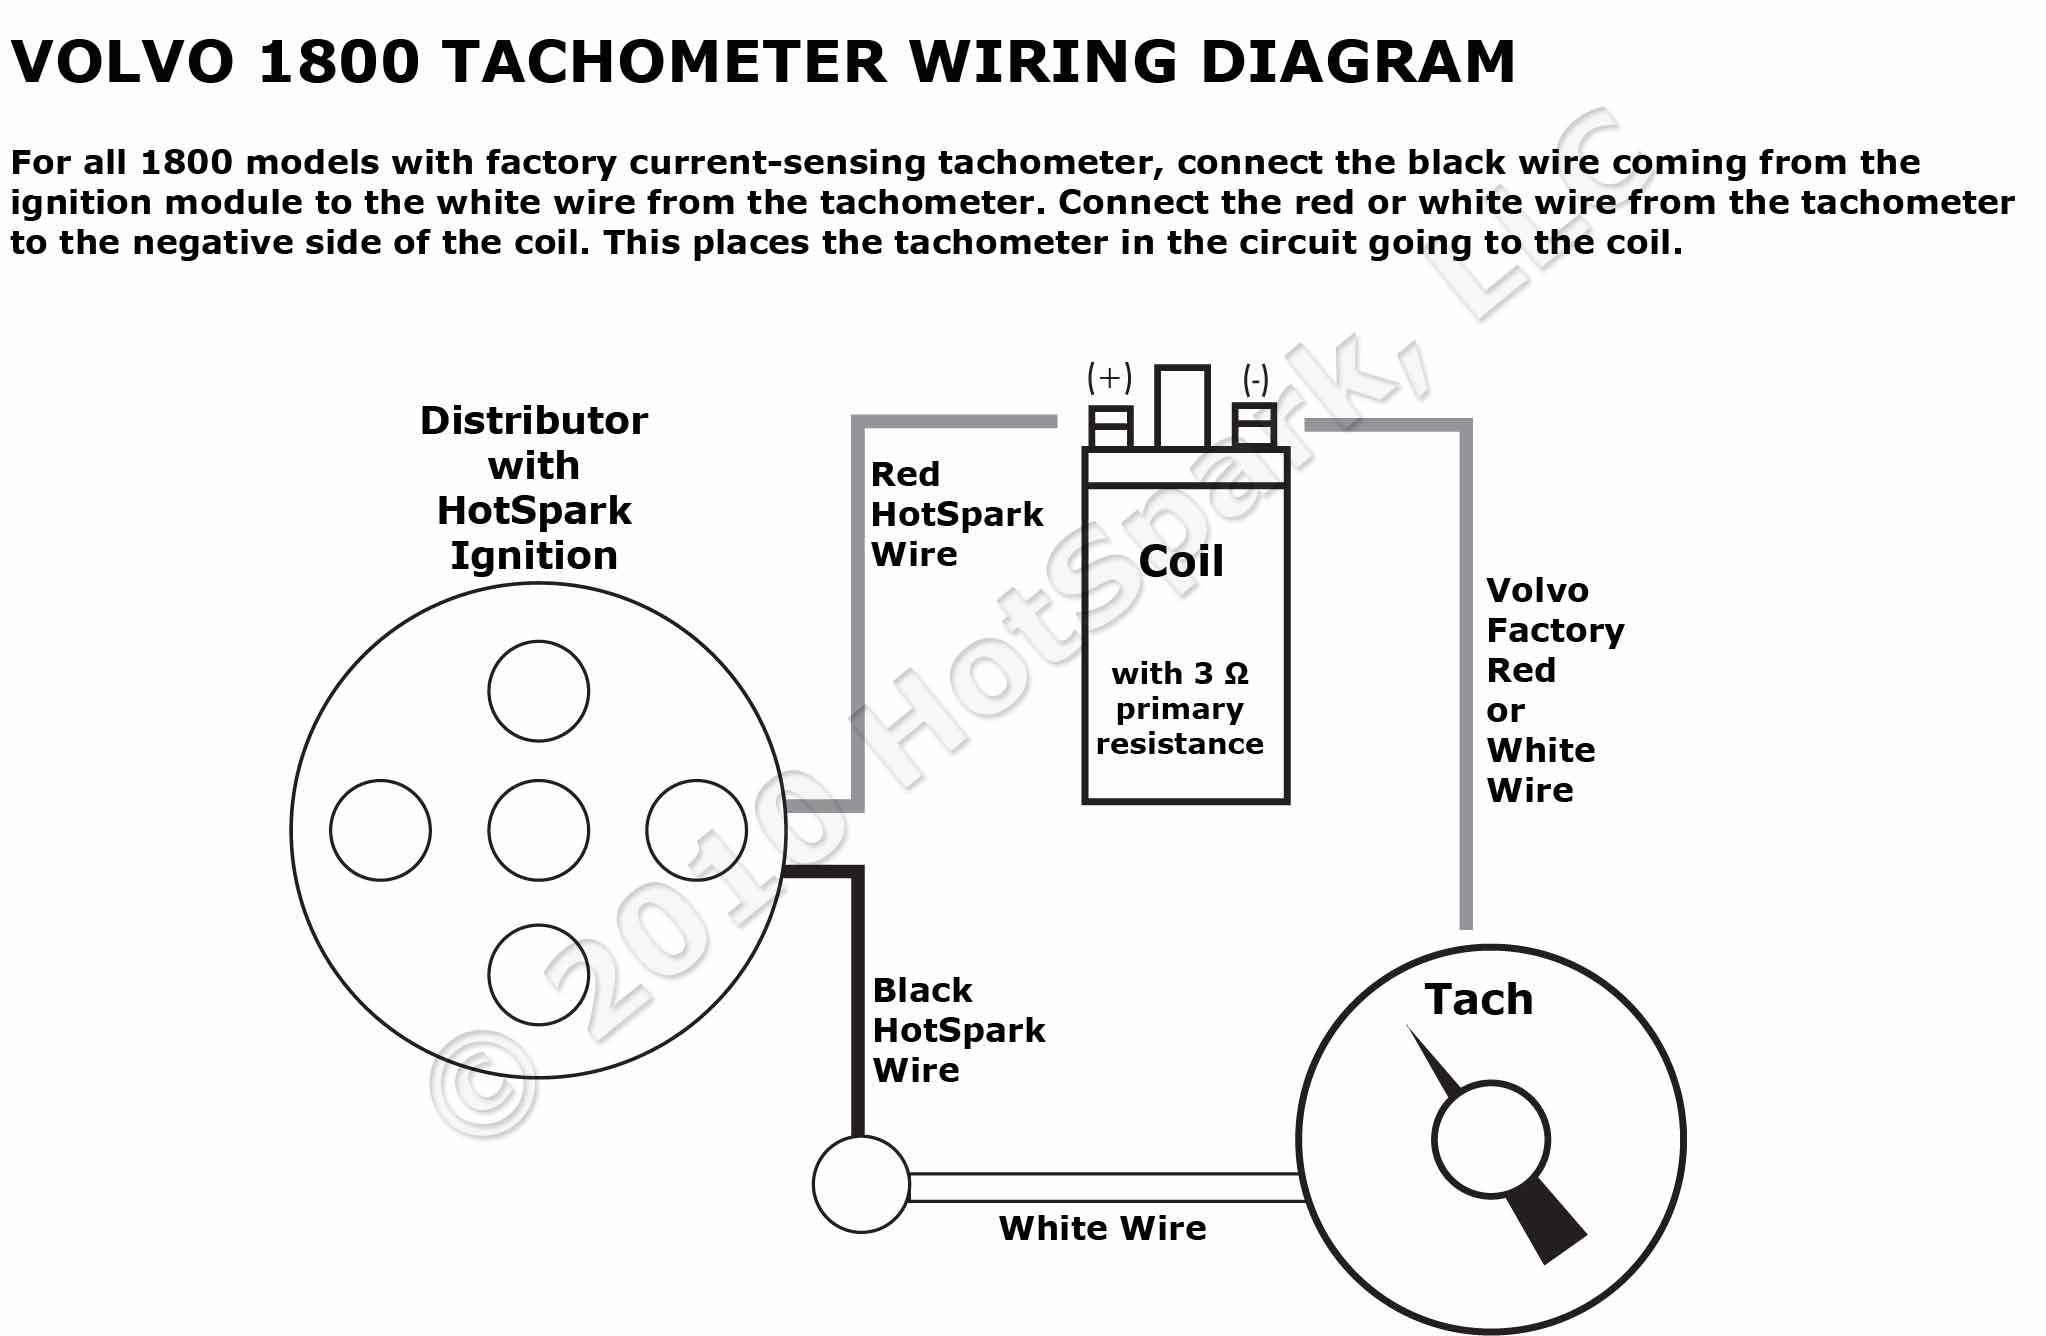 Volvo 1800 Tachometer and Hot Spark Wiring Diagram volvo 1800 tachometer wiring diagram with hotspark ignition tachometer wiring diagram at nearapp.co